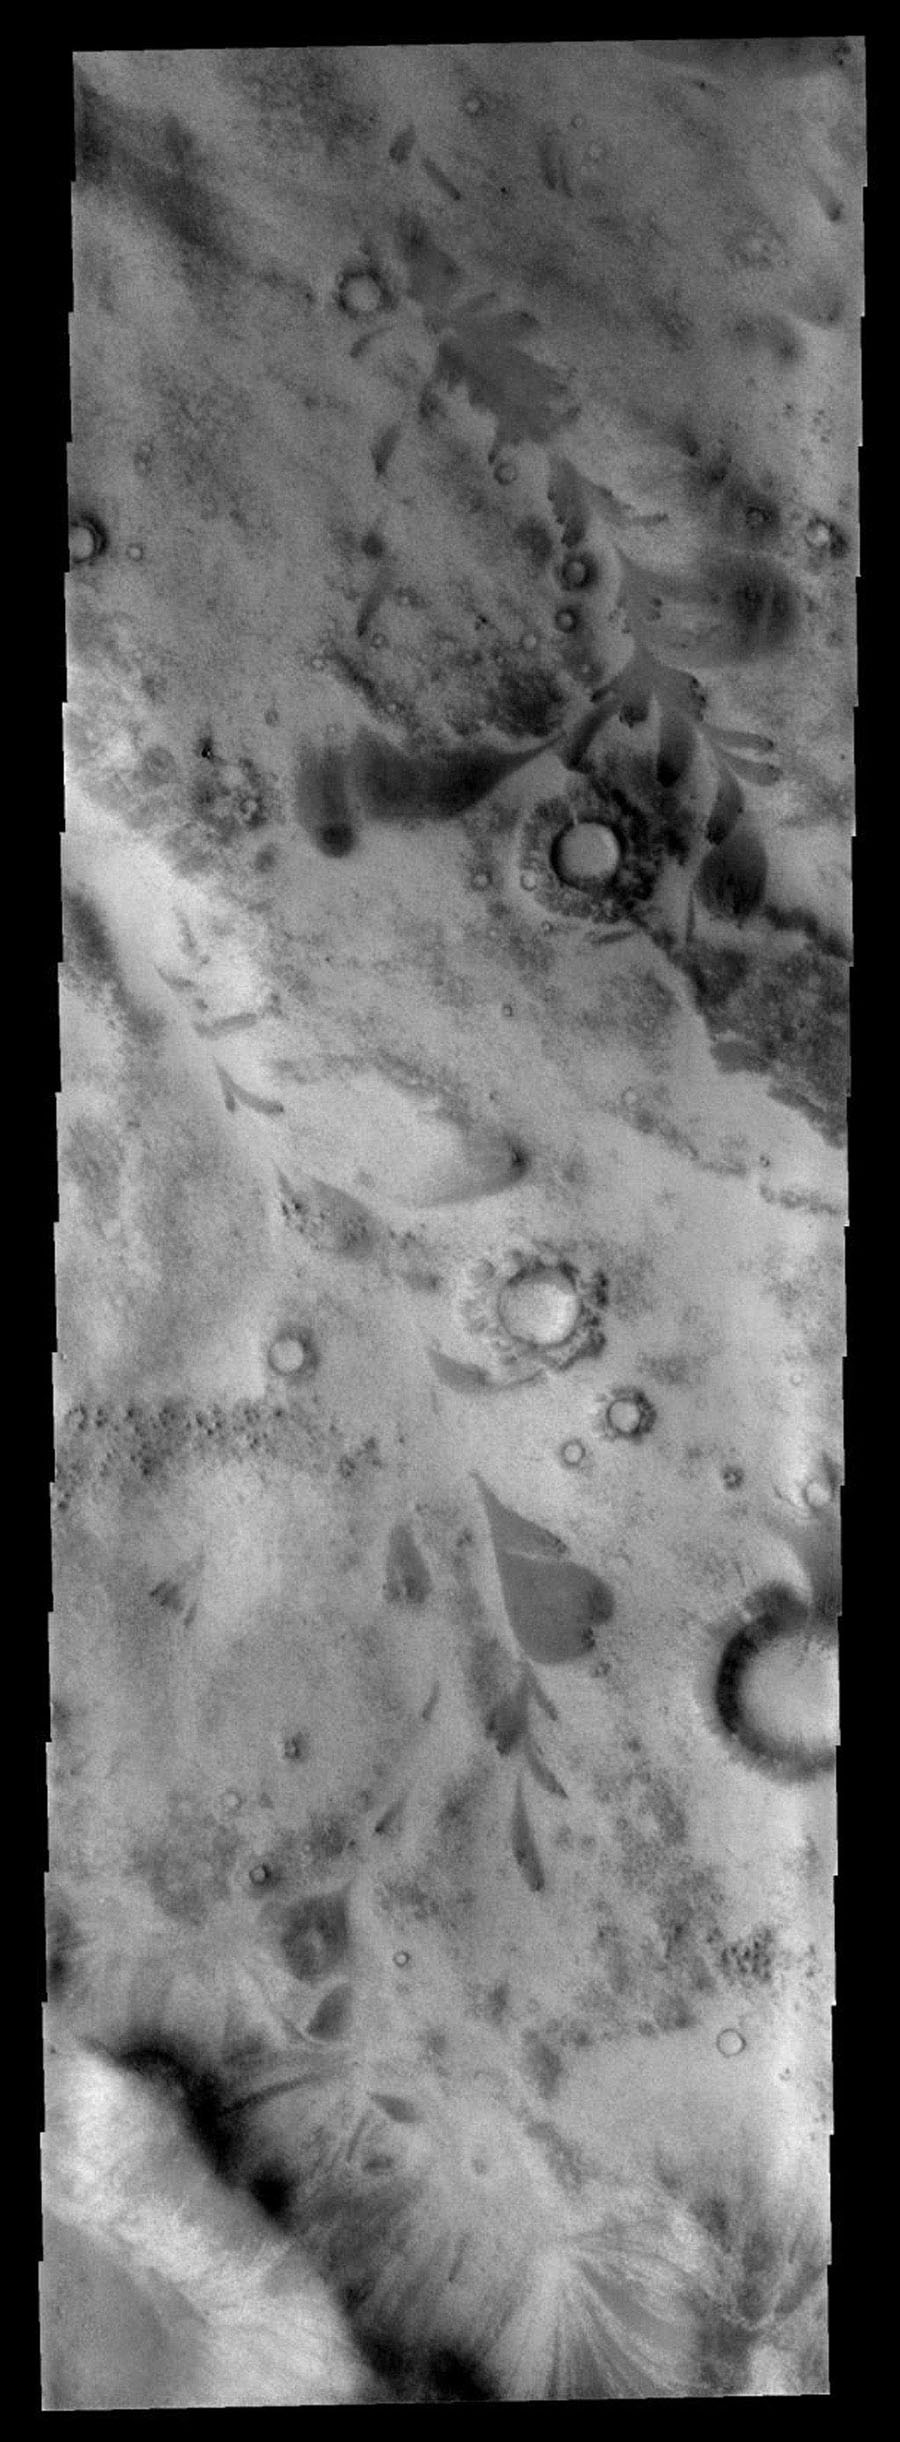 This image from NASA's Mars Odyssey spacecraft shows an area just outside Mars' south polar cap region. The dark leaf-shaped features are material moving down slope and then down valley.